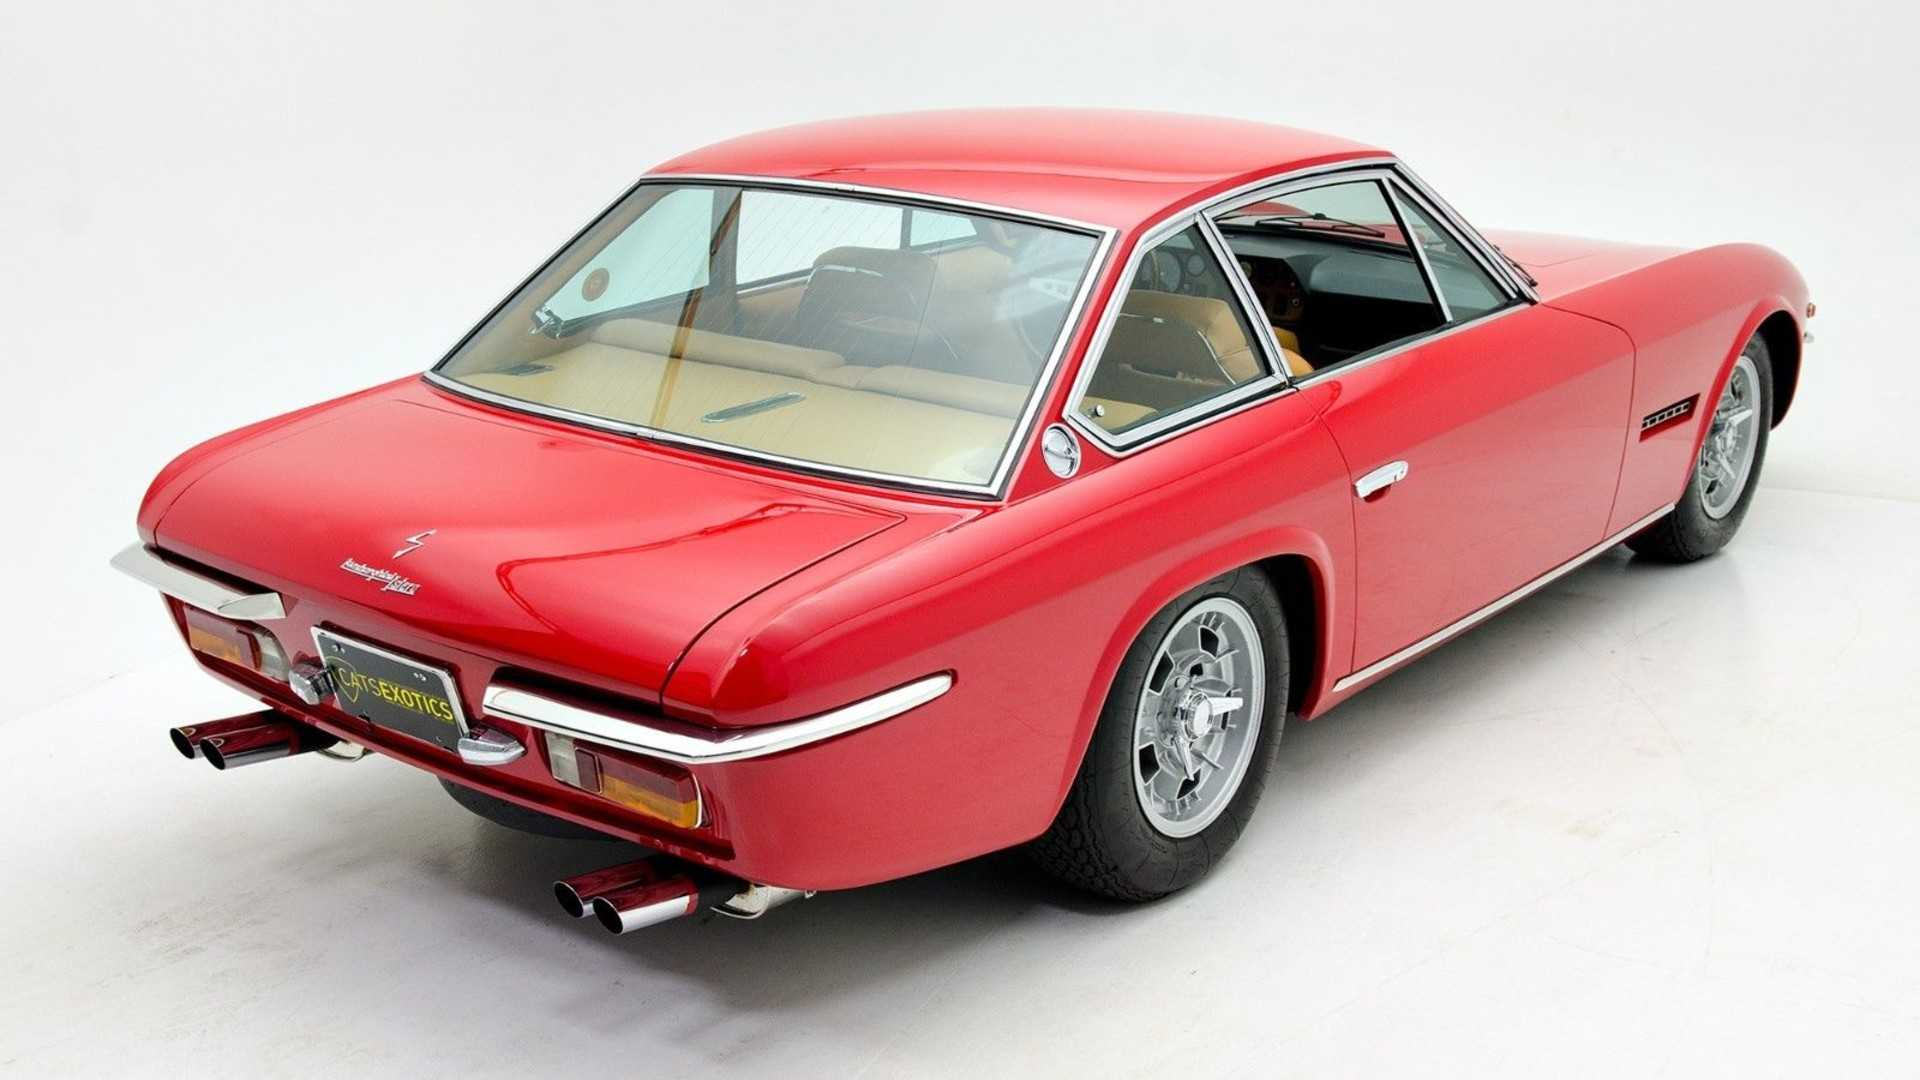 This 1 Of 100 Lamborghini Islero S Could Be Yours Motorious